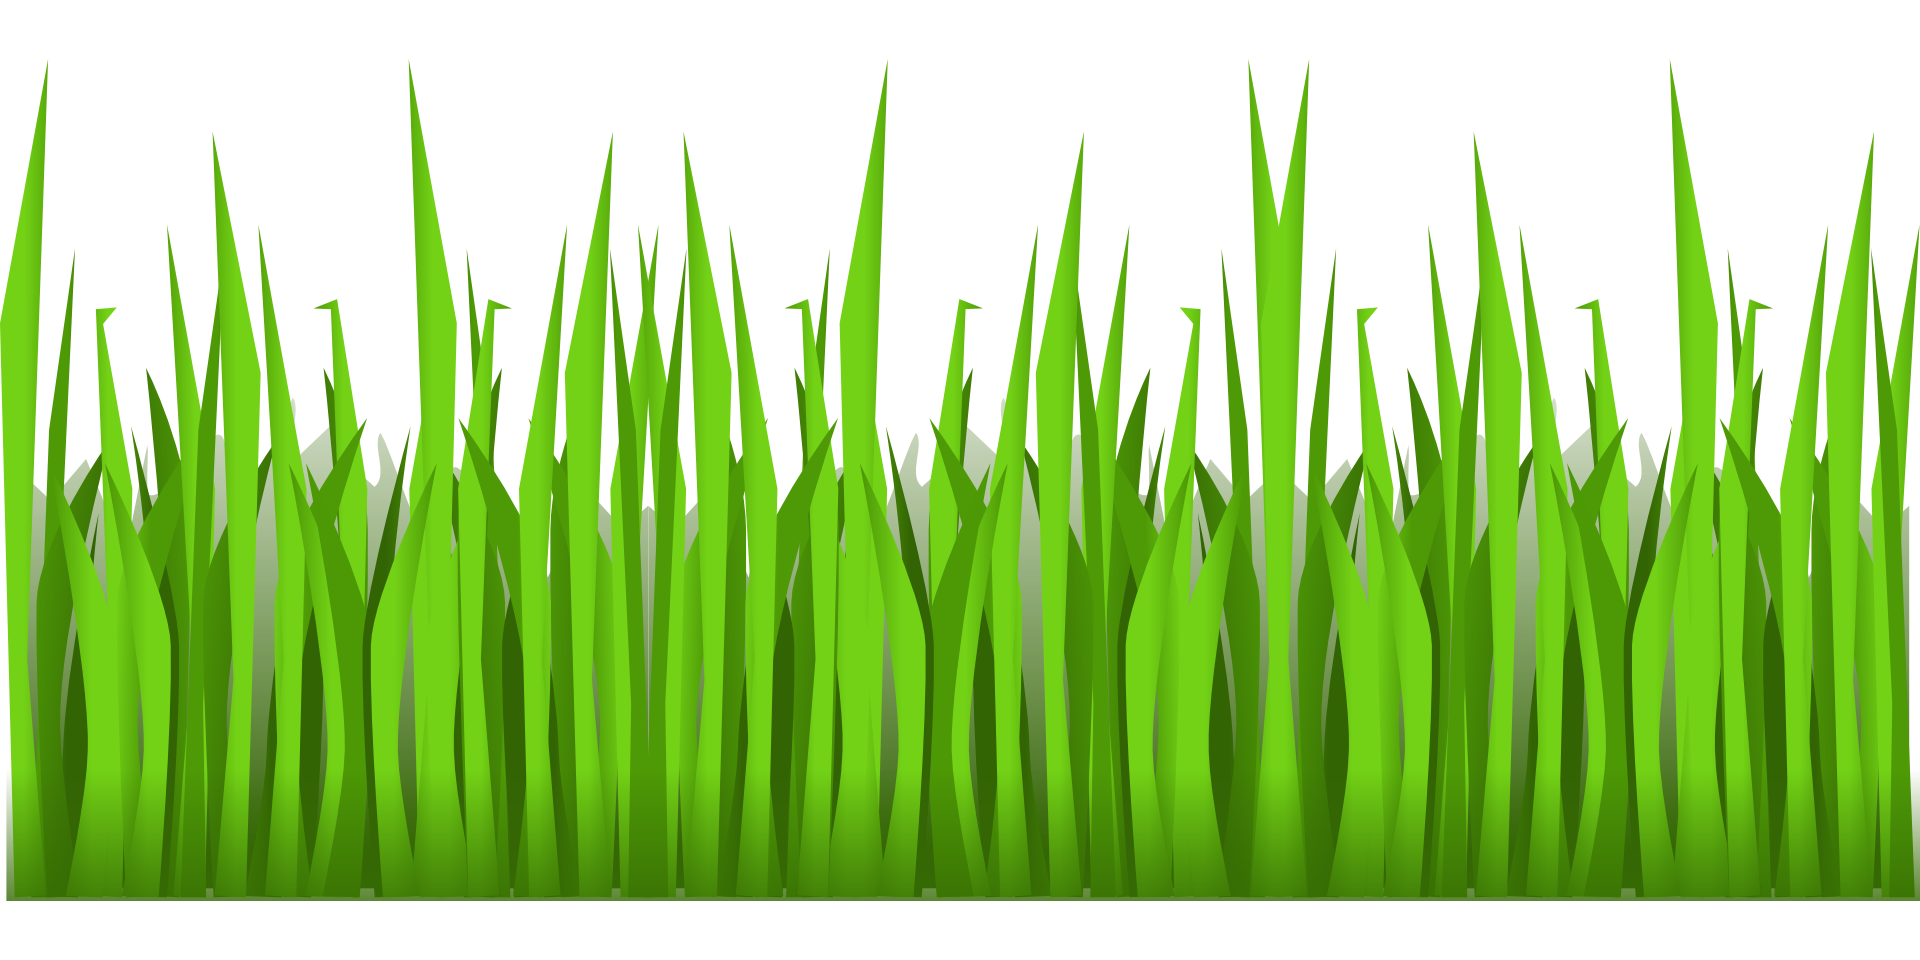 Grass clipart no background picture black and white download Clip art Openclipart Portable Network Graphics Image Vector graphics ... picture black and white download